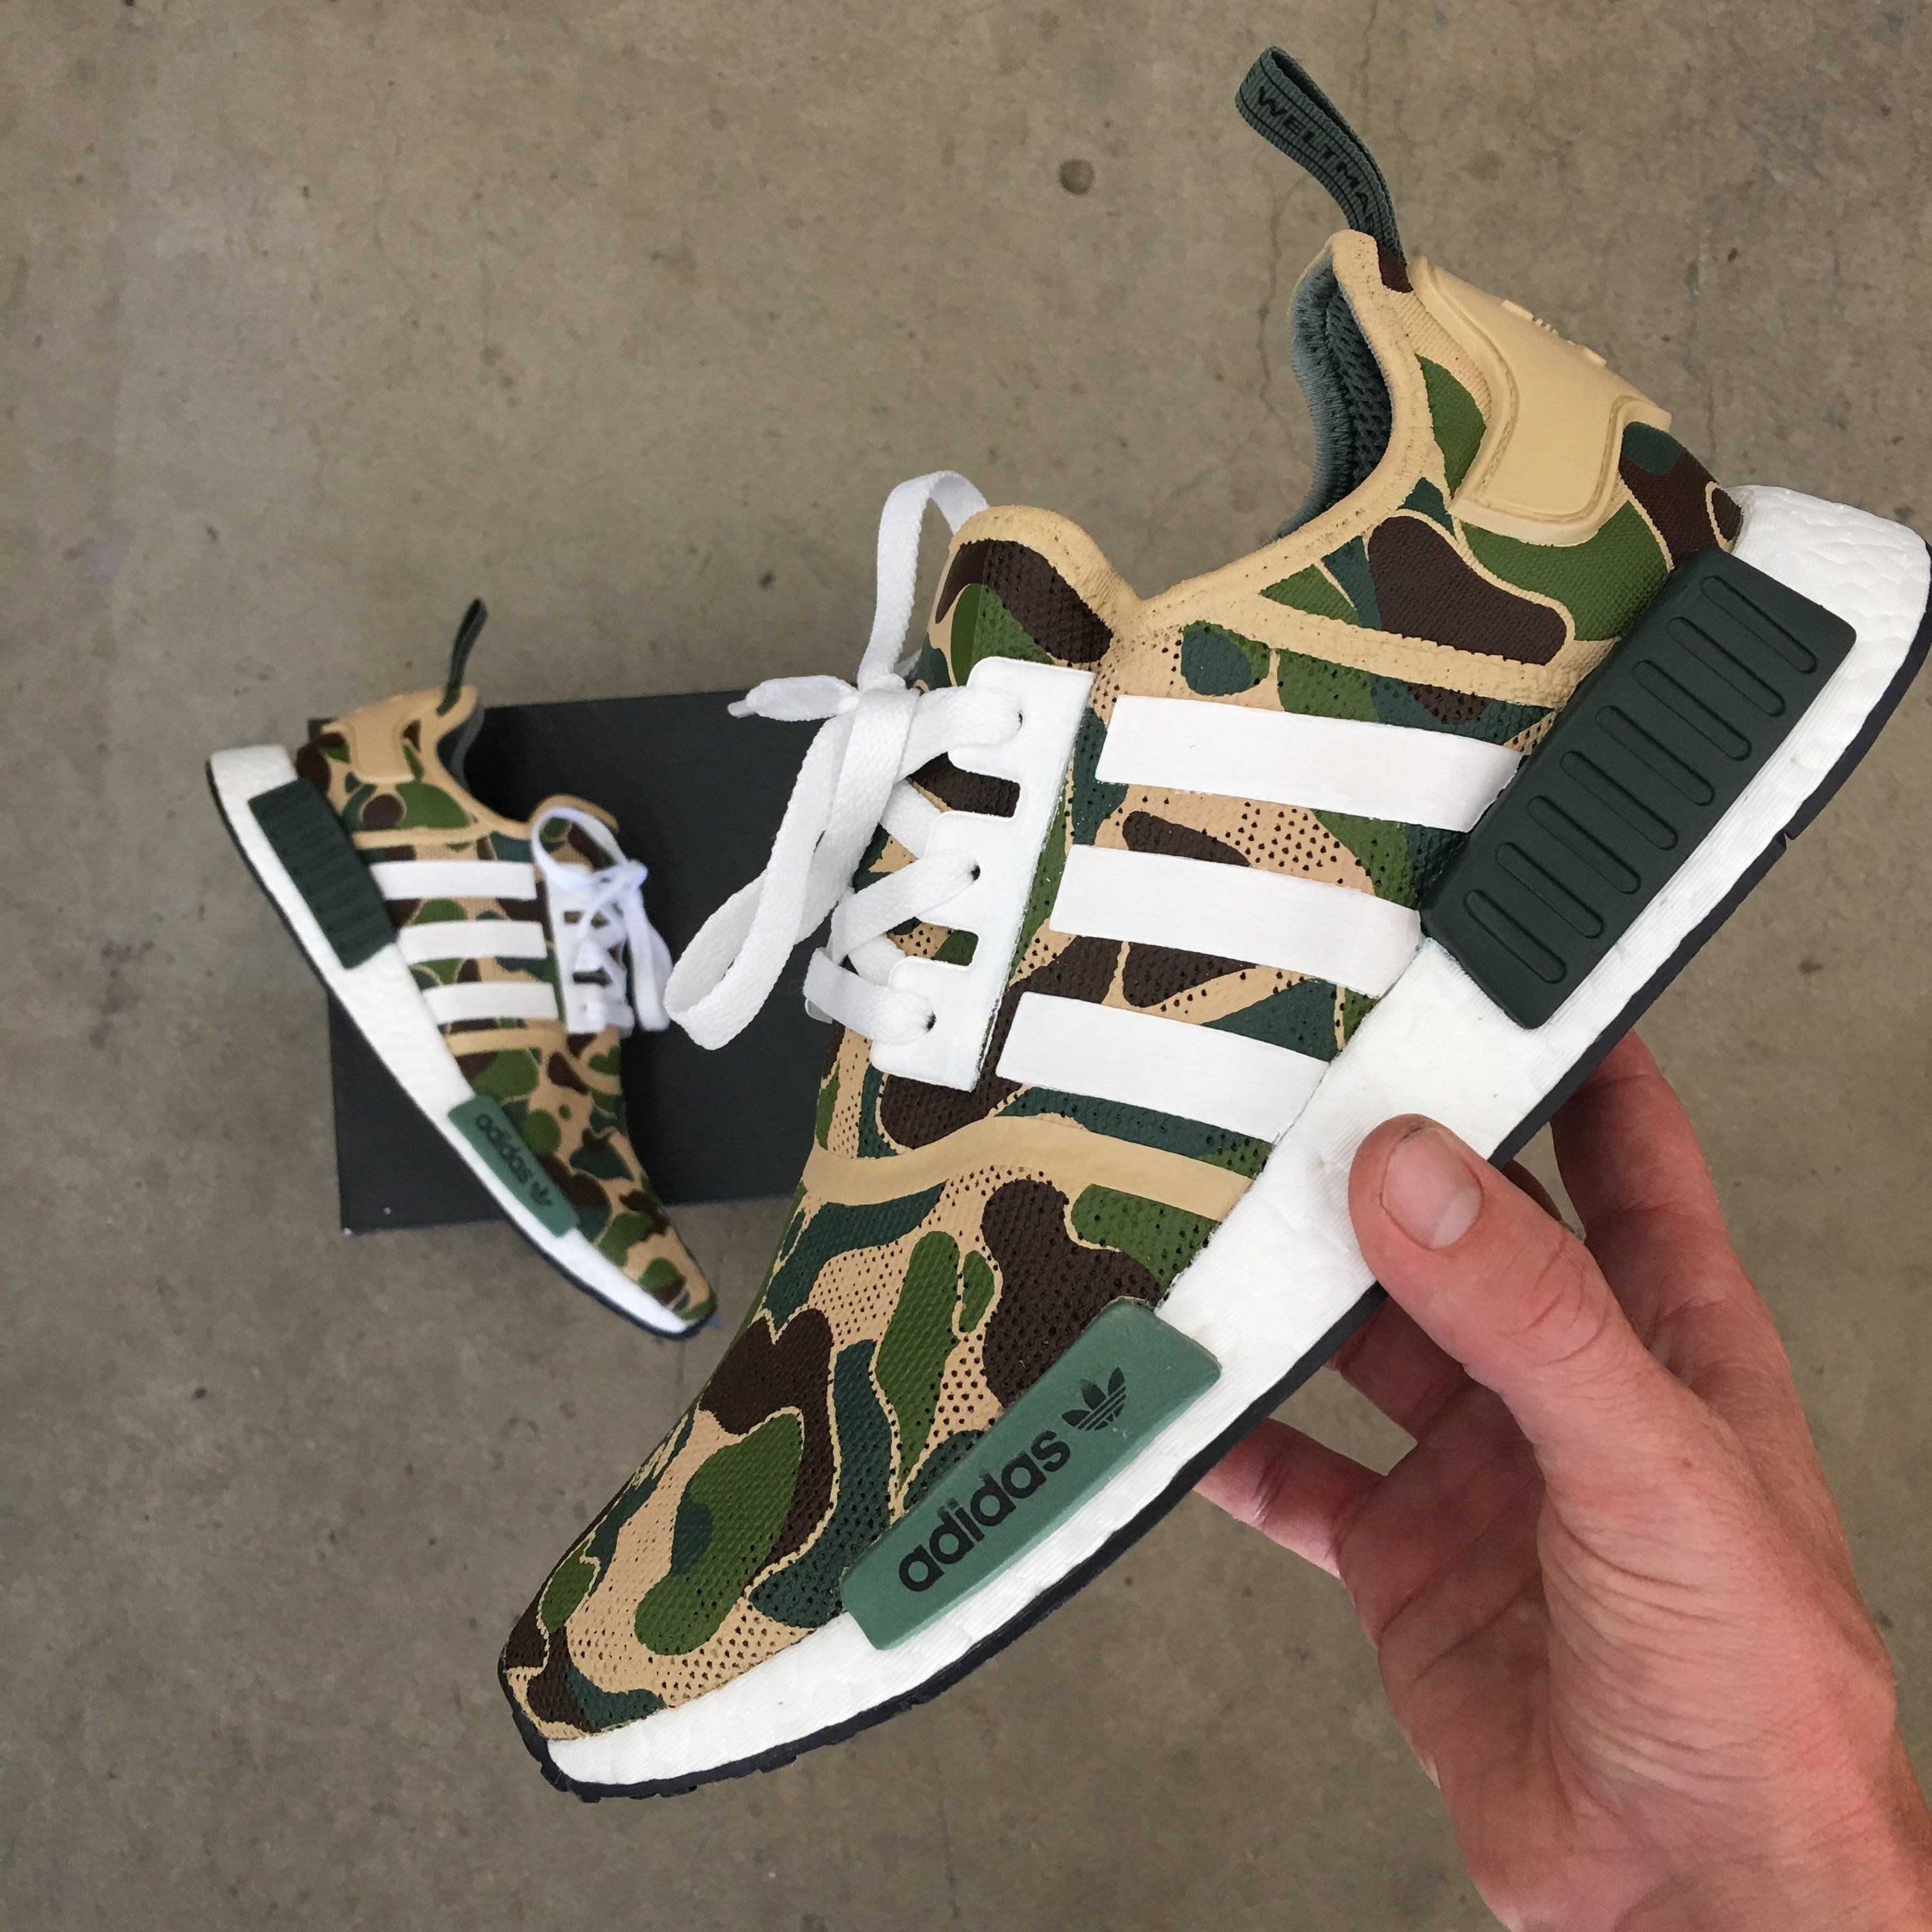 f6071b3bfd4b9 BAPE inspired custom hand painted Adidas NMD R1 with the iconic BAPE  camouflage. This amazing design will be available for a limited time only!